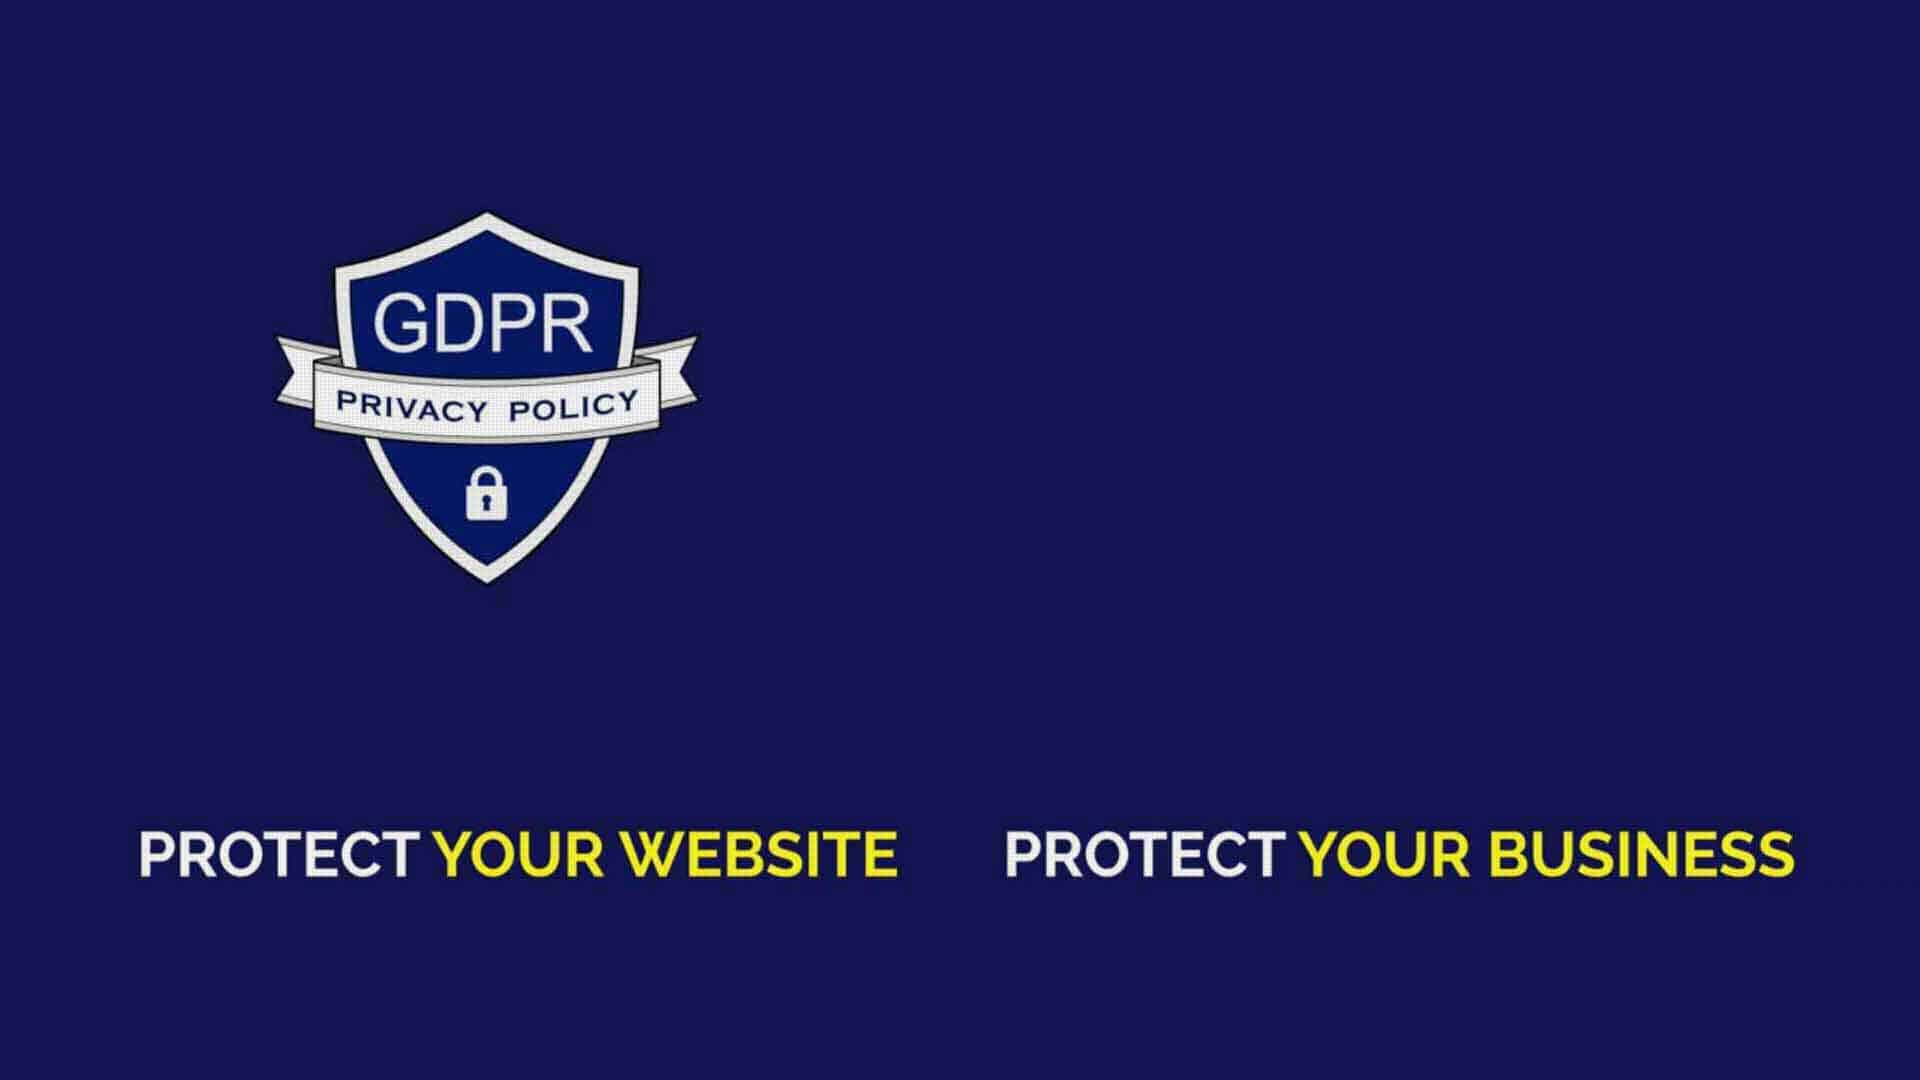 Is Your Website GDPR-compliant GDPR Privacy Policy